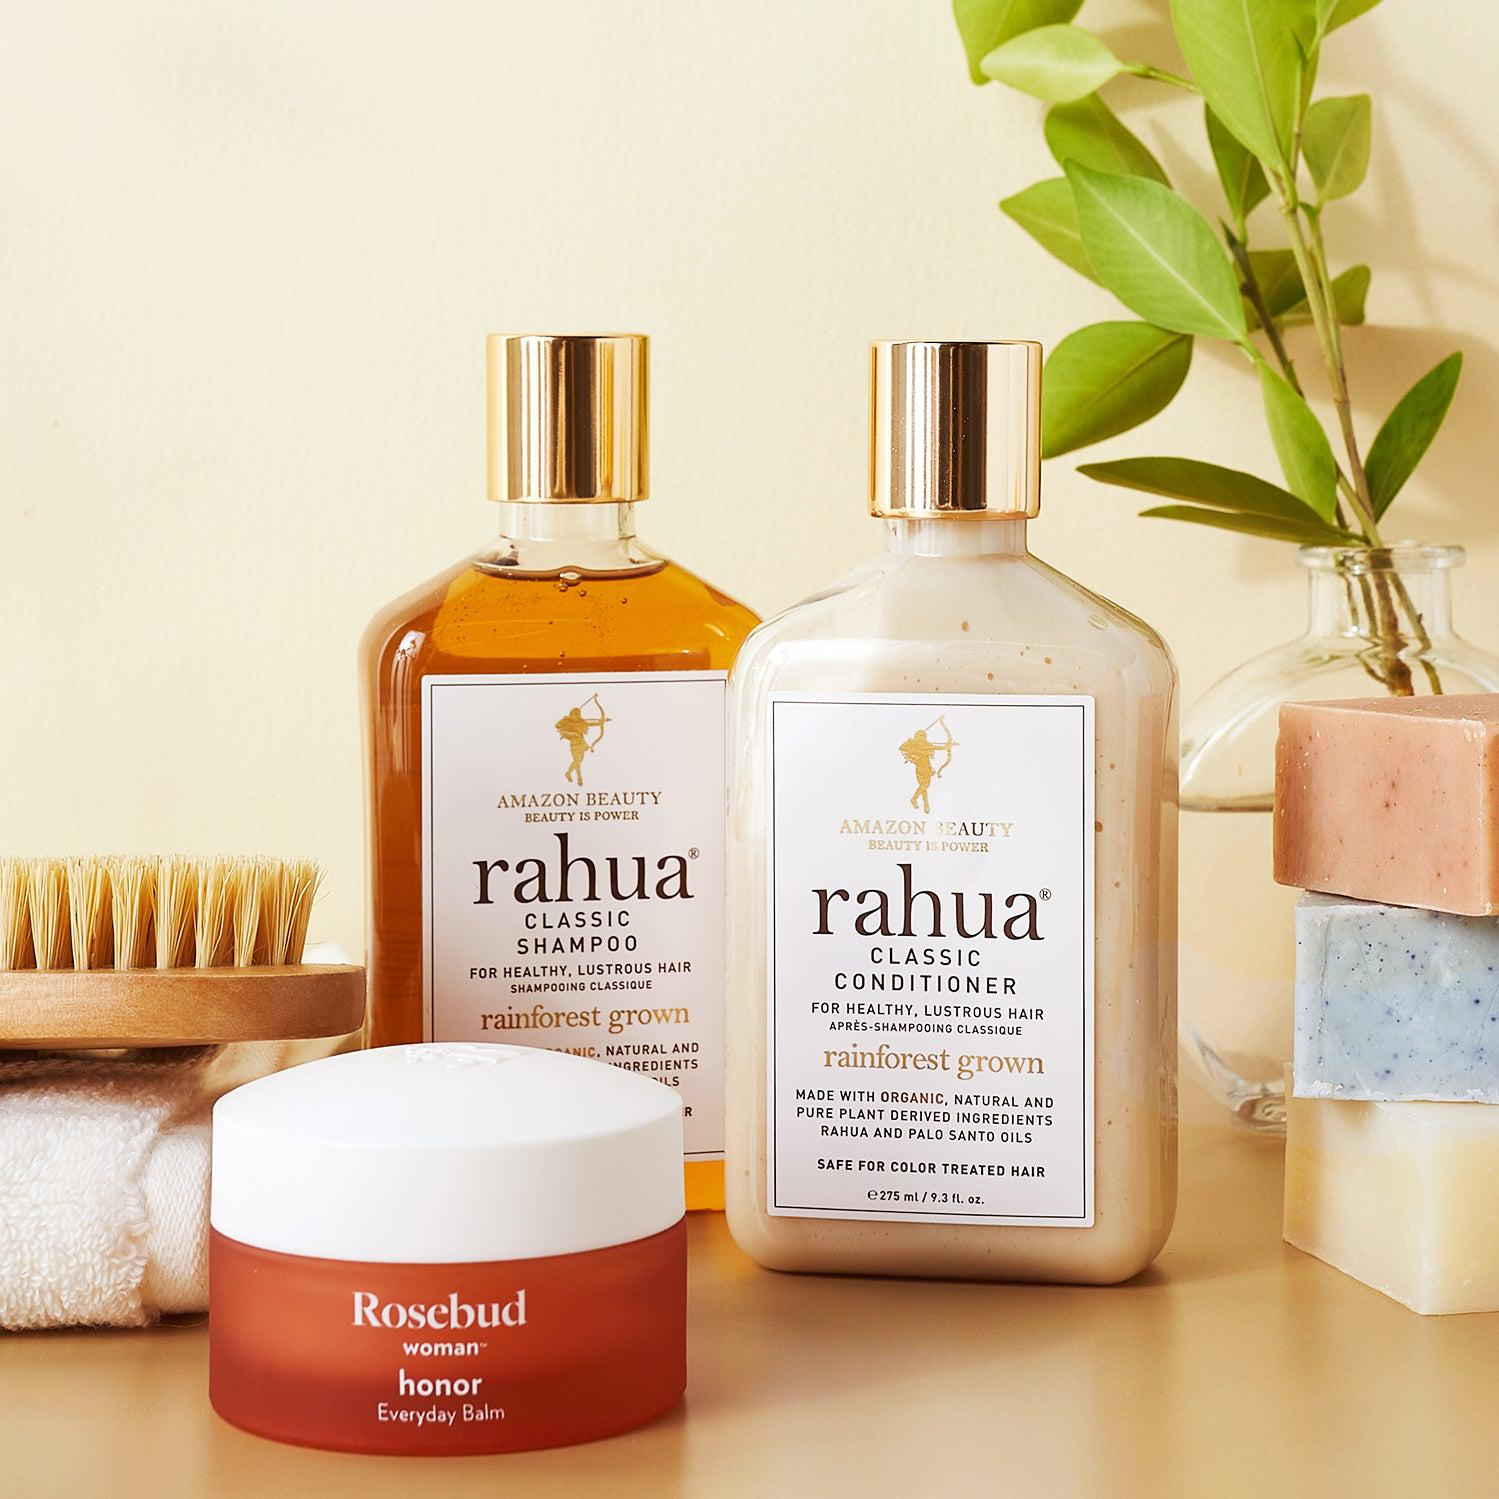 rahua classic shampoo classic conditioner rosebud honor balm sade baron bar soap dry body brush